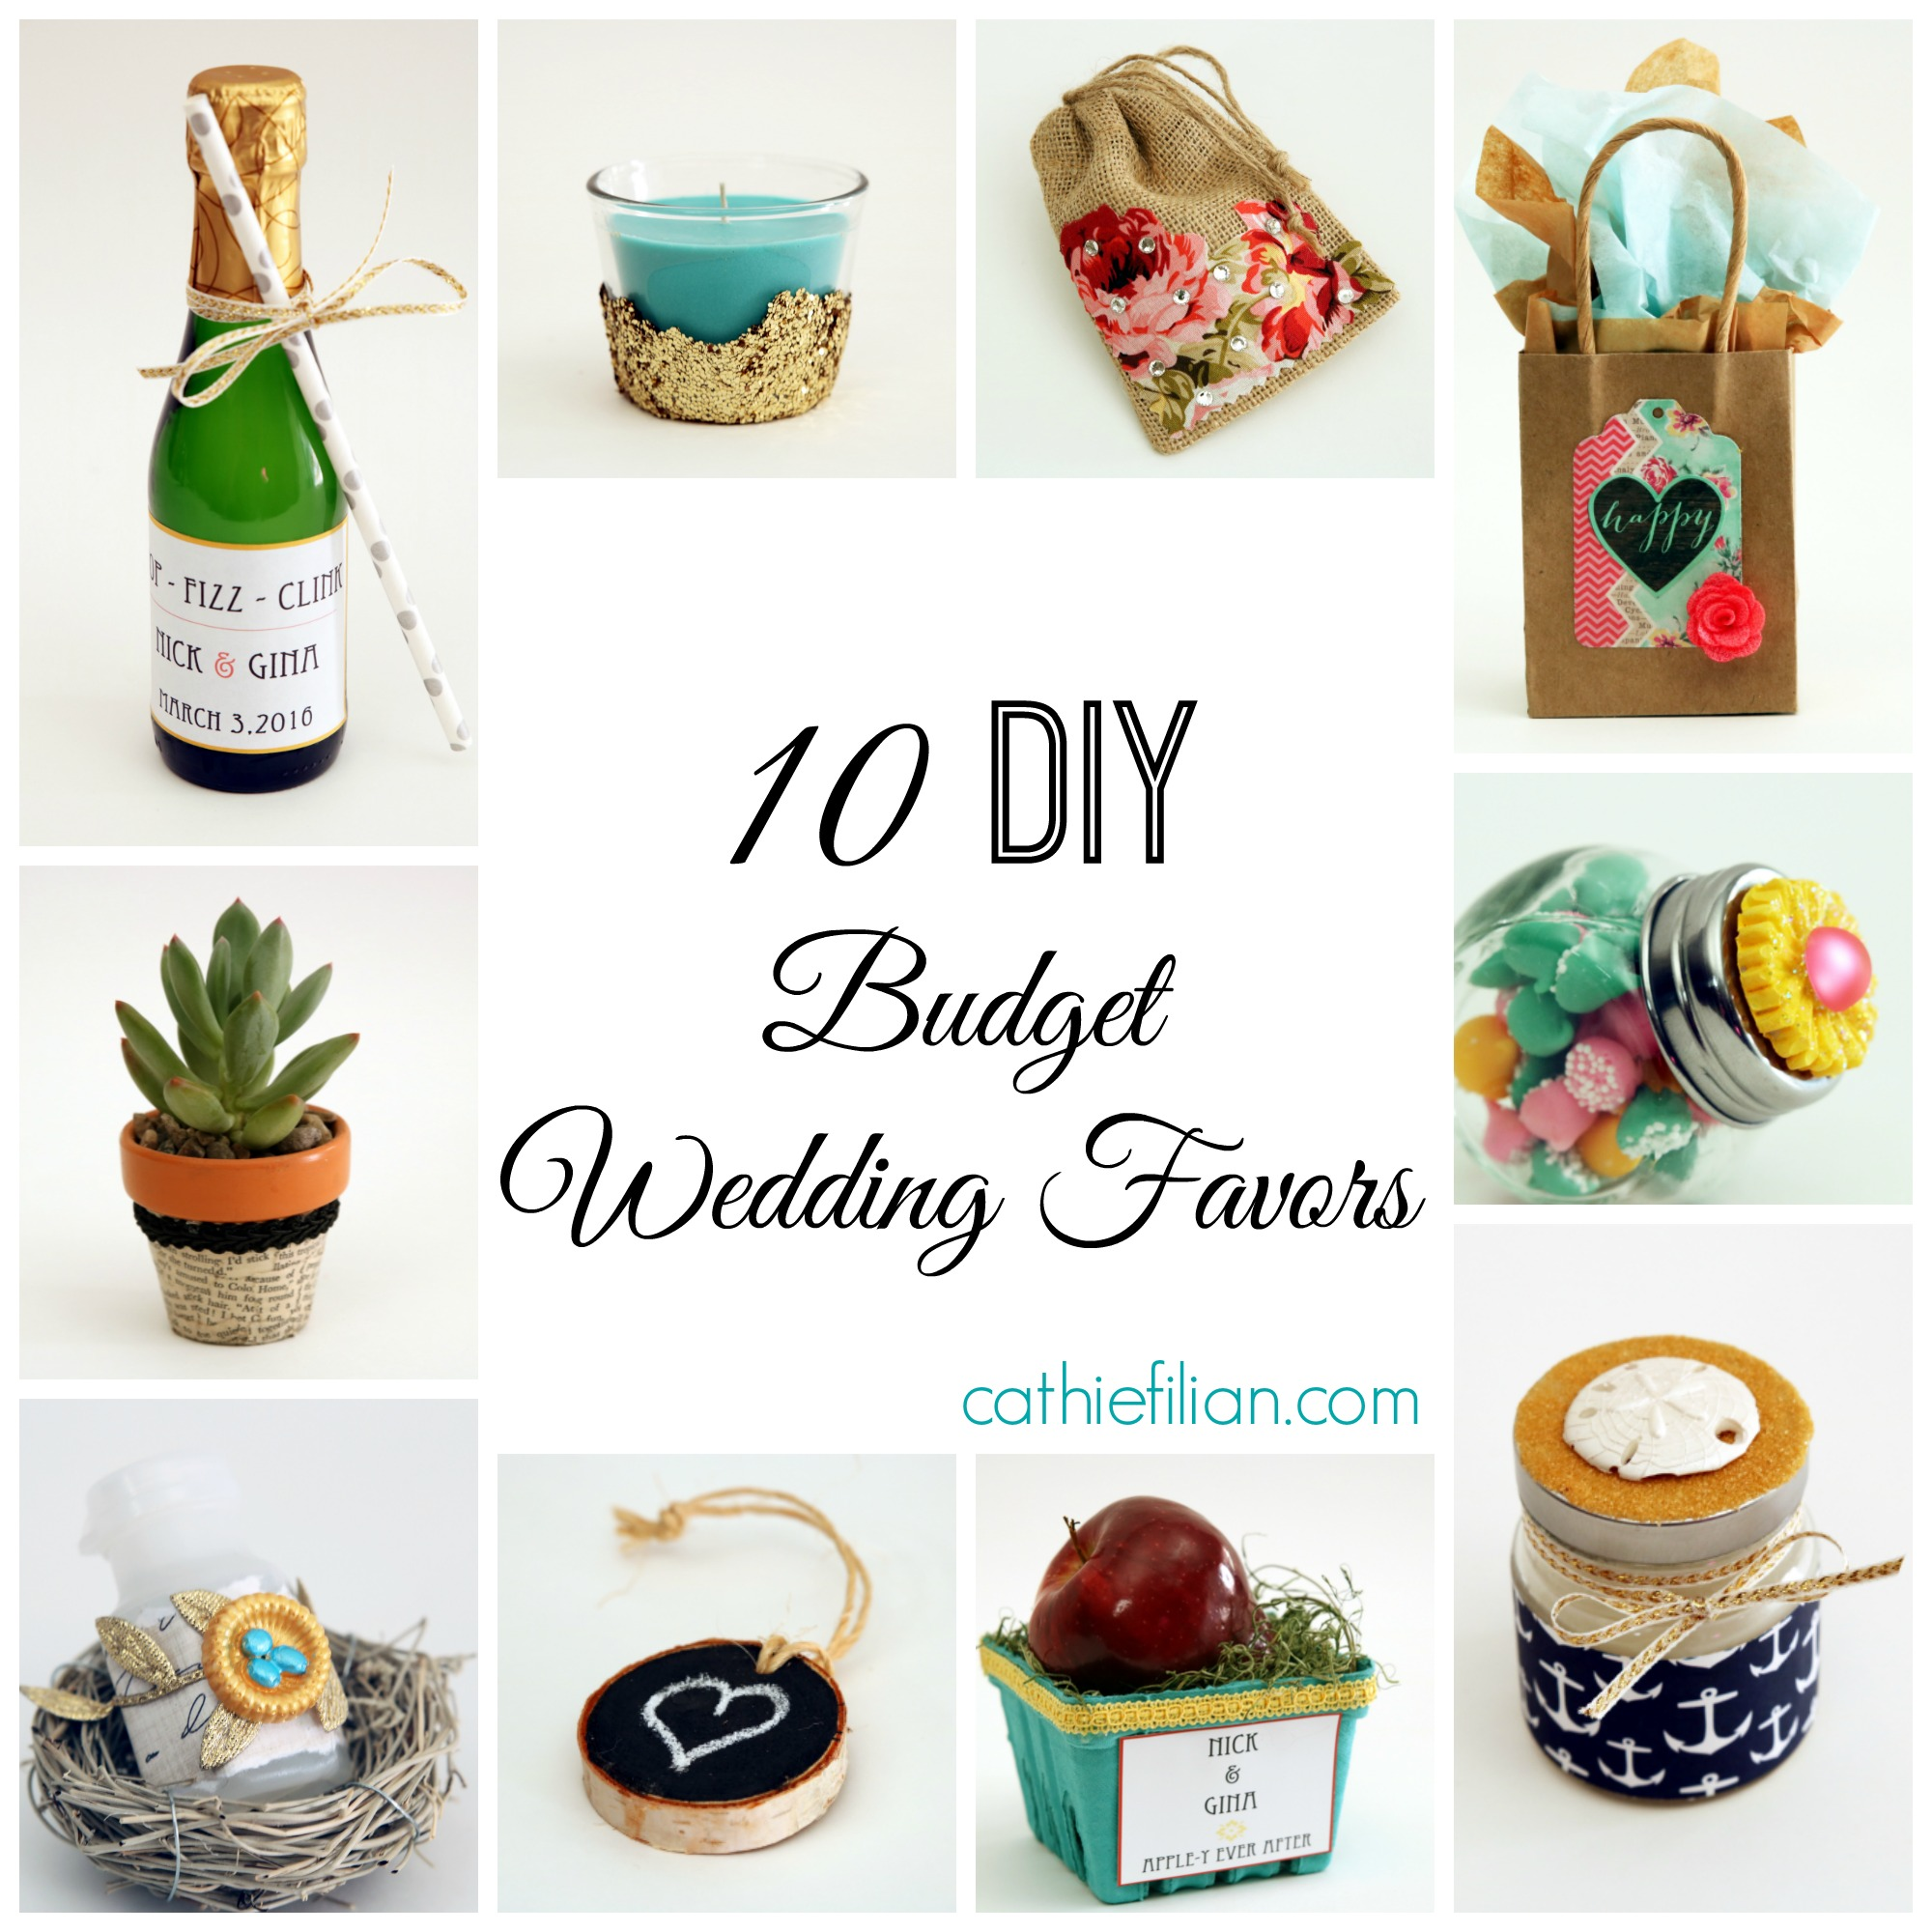 18 Diy Wedding Decorations On A Budget: 10 DIY Budget Wedding Favor Ideas